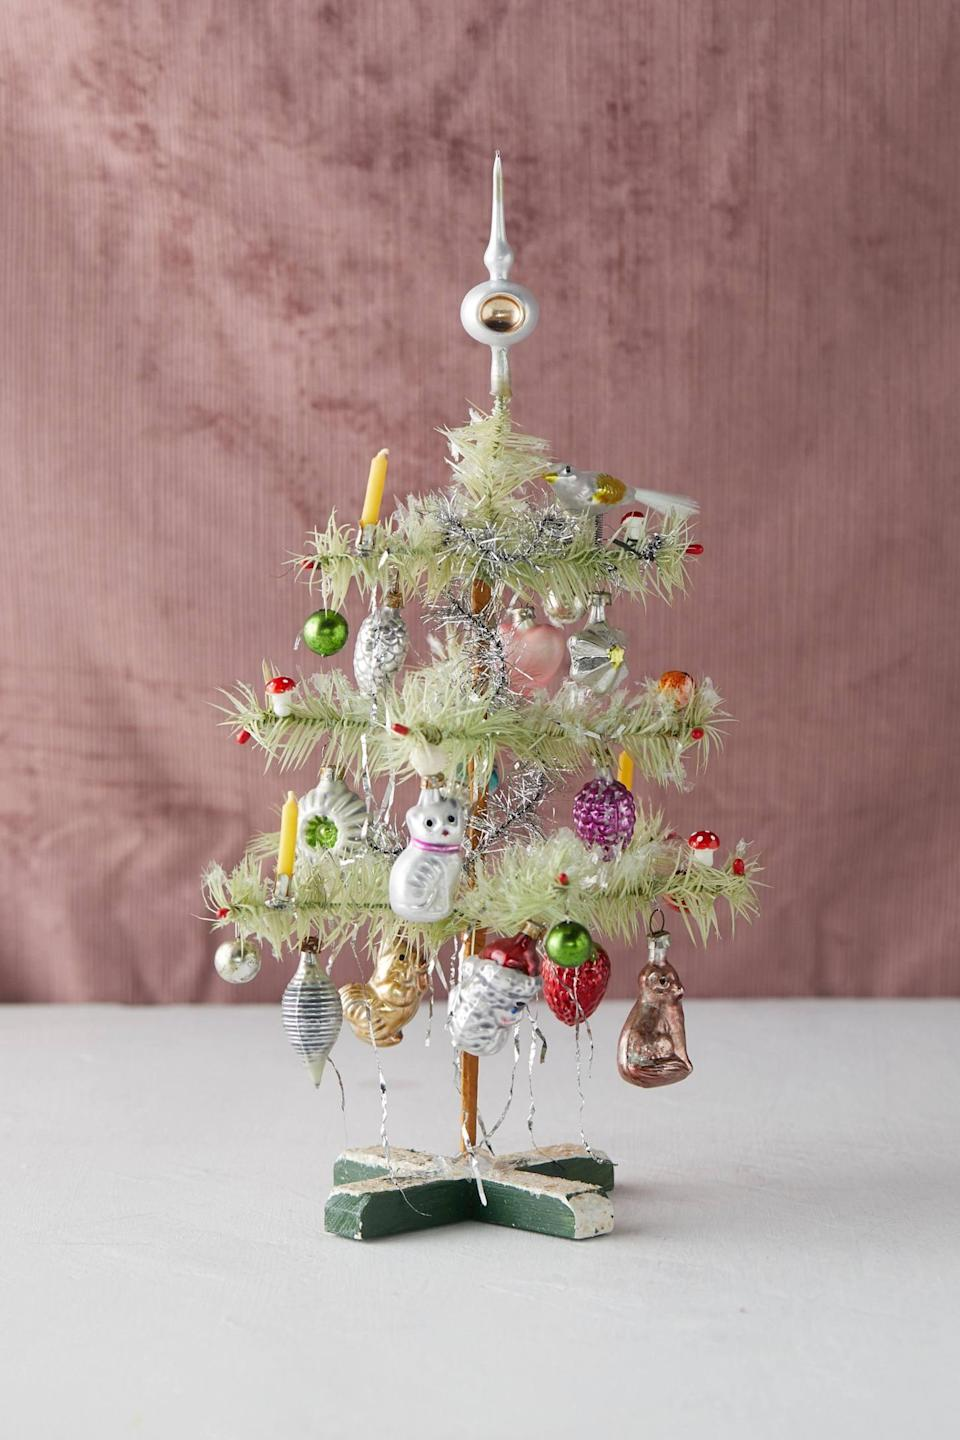 """<p>Complete with ornaments to match, you can't go wrong with this adorable <a href=""""https://www.popsugar.com/buy/Decorated-Feather-Mini-Christmas-Tree-502214?p_name=Decorated%20Feather%20Mini%20Christmas%20Tree&retailer=anthropologie.com&pid=502214&price=188&evar1=casa%3Aus&evar9=46615300&evar98=https%3A%2F%2Fwww.popsugar.com%2Fhome%2Fphoto-gallery%2F46615300%2Fimage%2F46767572%2FDecorated-Feather-Mini-Christmas-Tree&list1=shopping%2Canthropologie%2Choliday%2Cchristmas%2Cchristmas%20decorations%2Choliday%20decor%2Chome%20shopping&prop13=mobile&pdata=1"""" rel=""""nofollow noopener"""" class=""""link rapid-noclick-resp"""" target=""""_blank"""" data-ylk=""""slk:Decorated Feather Mini Christmas Tree"""">Decorated Feather Mini Christmas Tree</a> ($188).</p>"""